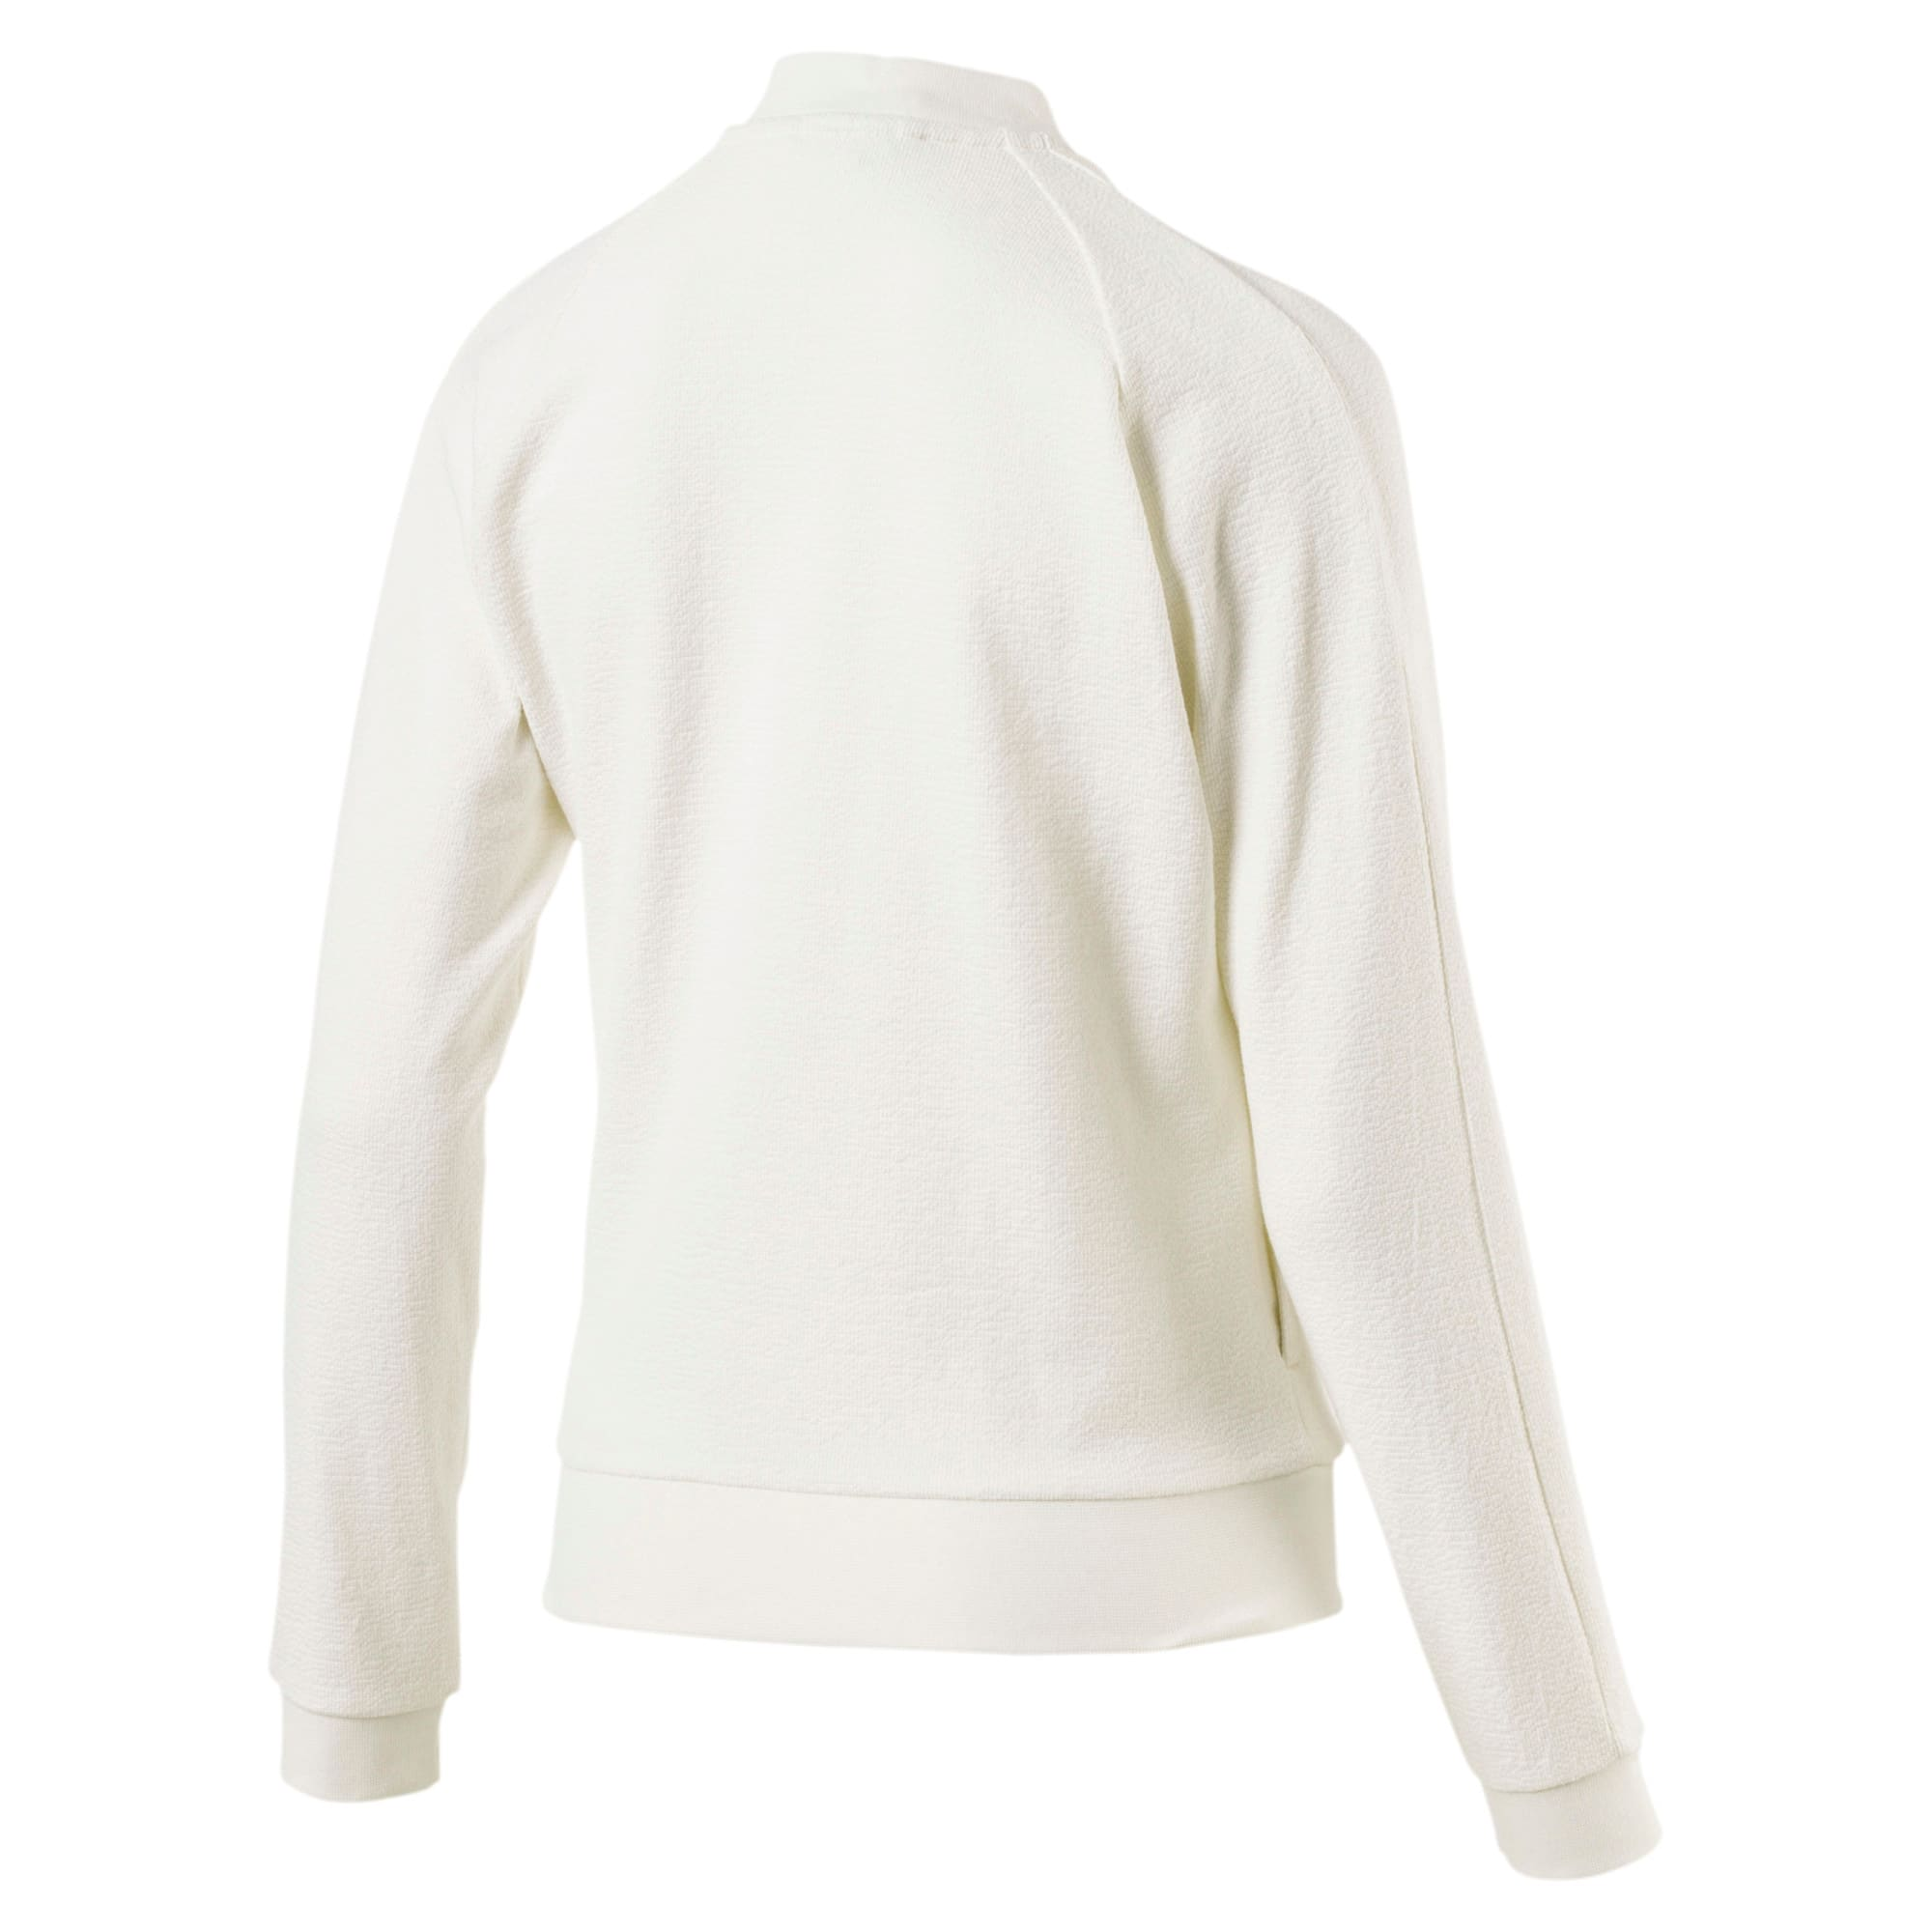 Thumbnail 5 of Classics Women's Structured Archive T7 Track Jacket, Marshmallow, medium-IND